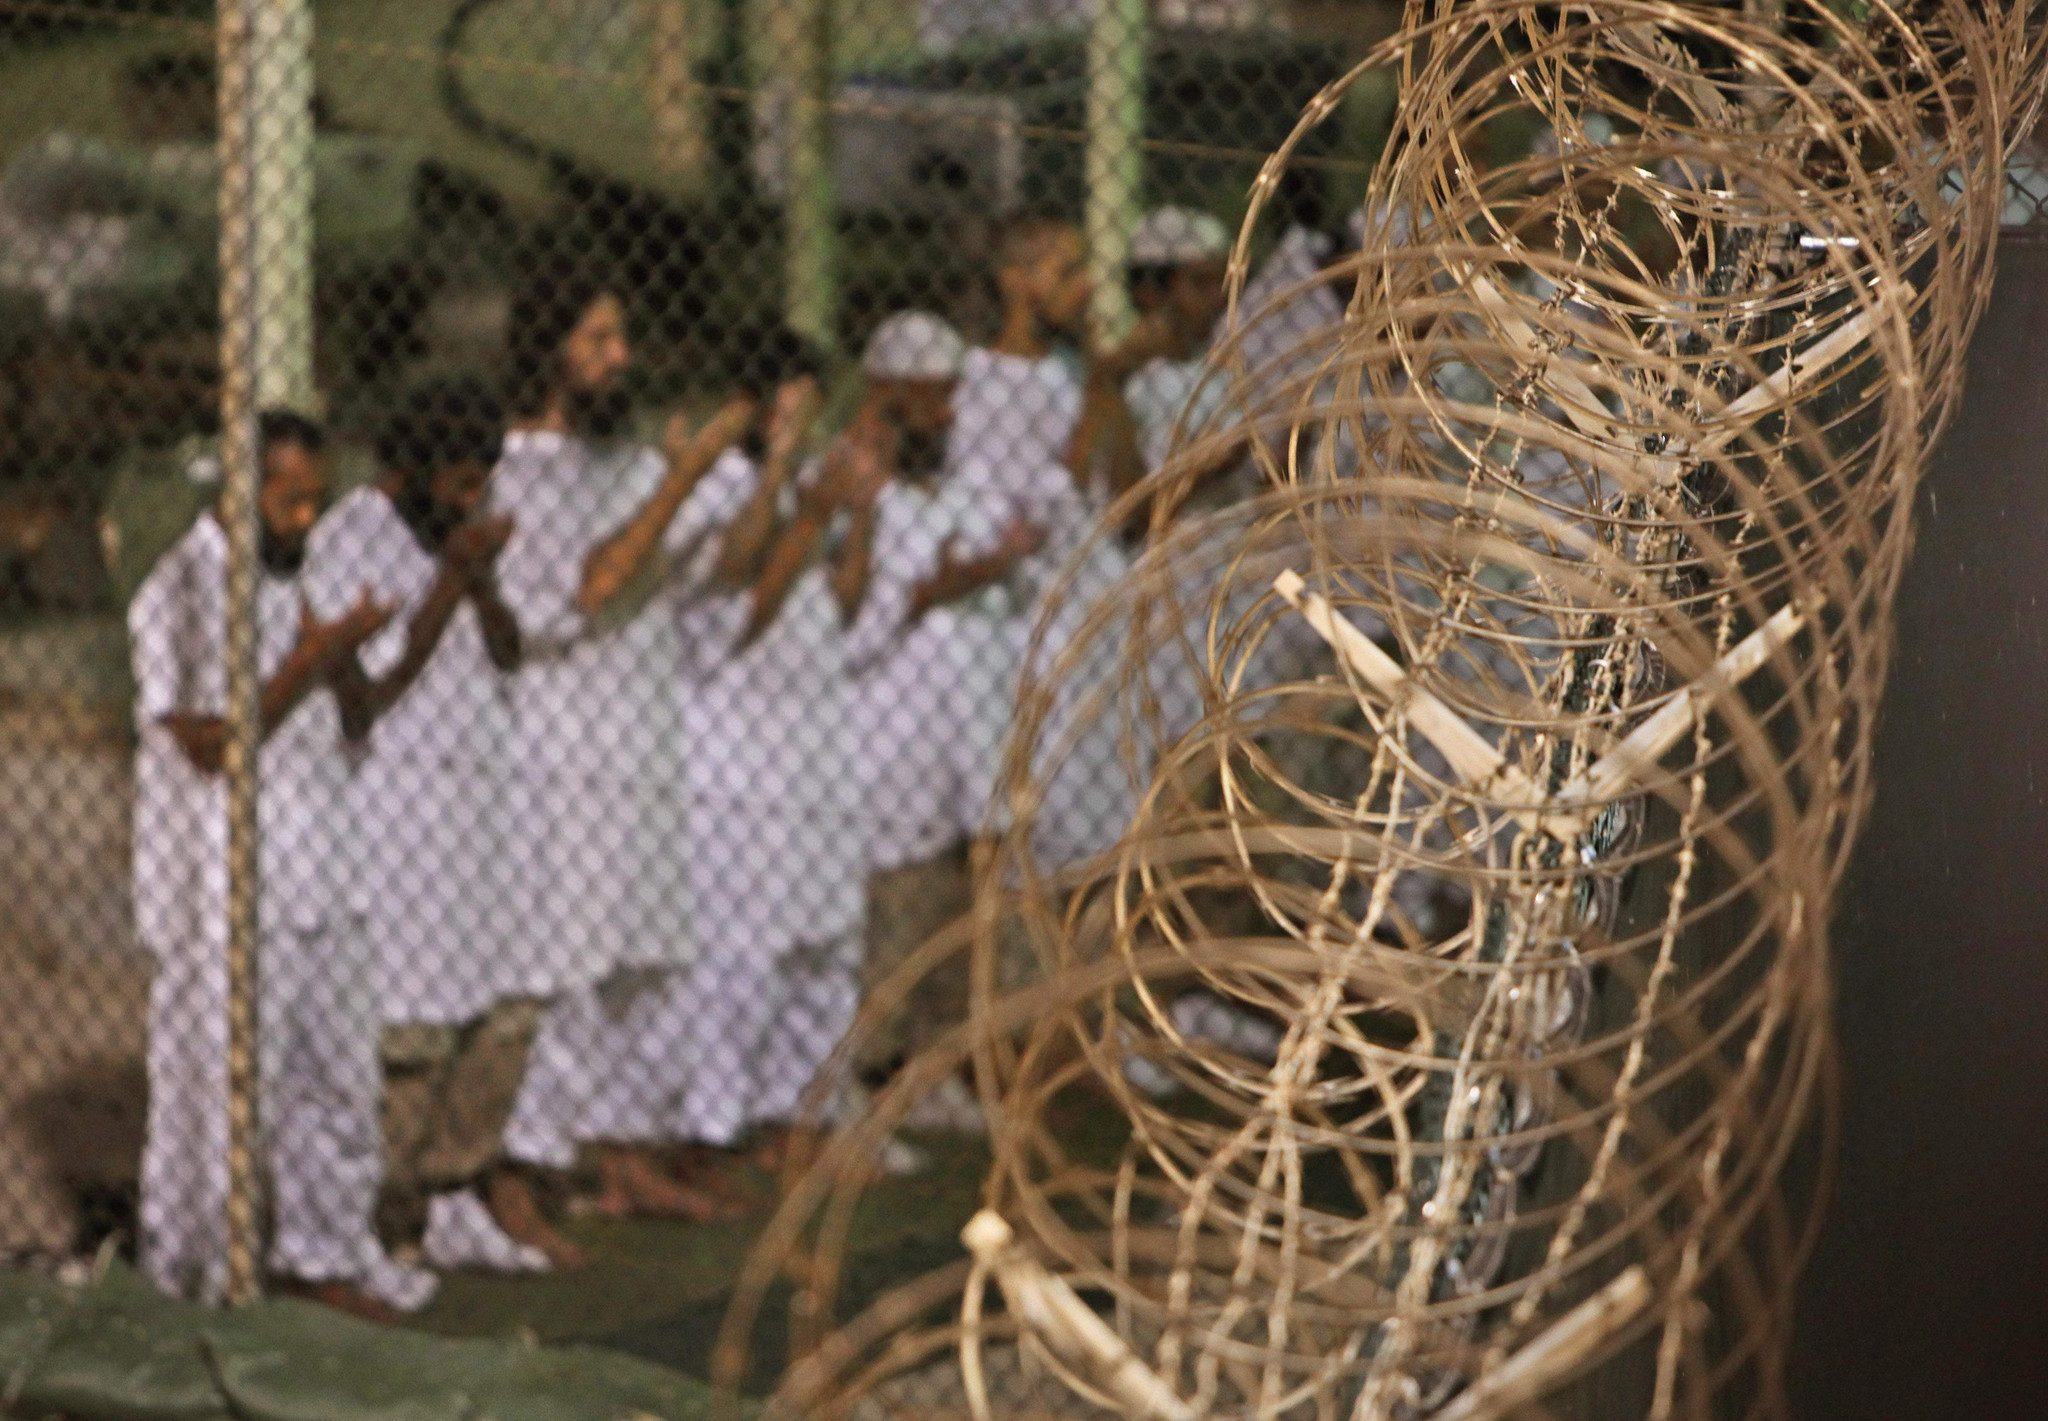 Fewer than 100 Guantanamo prisoners left as 10 leave to Oman